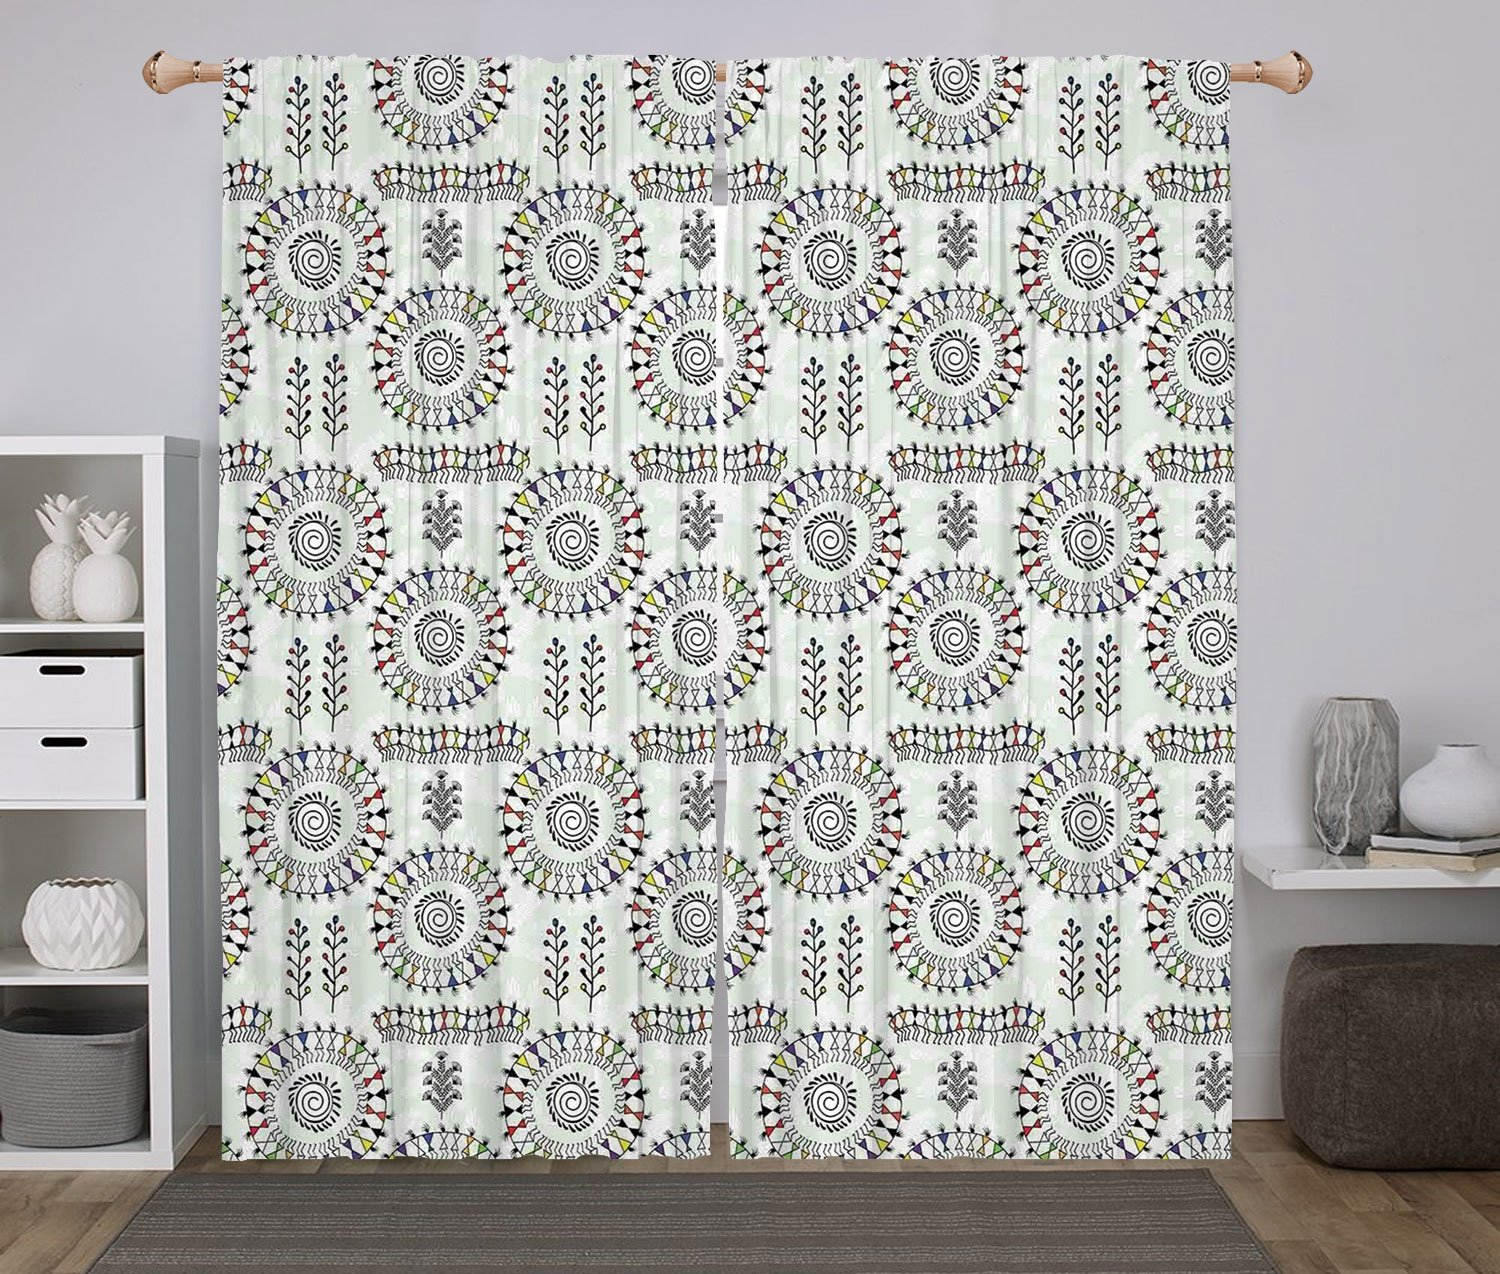 2 Panel Set Window Drapes Kitchen Curtains,Traditional House Decor Old African Art Tribal with Ancient Tribal Sacred Circular Dance Folk Figure Image Multi,for Bedroom Living Room Dorm Kitchen Cafe